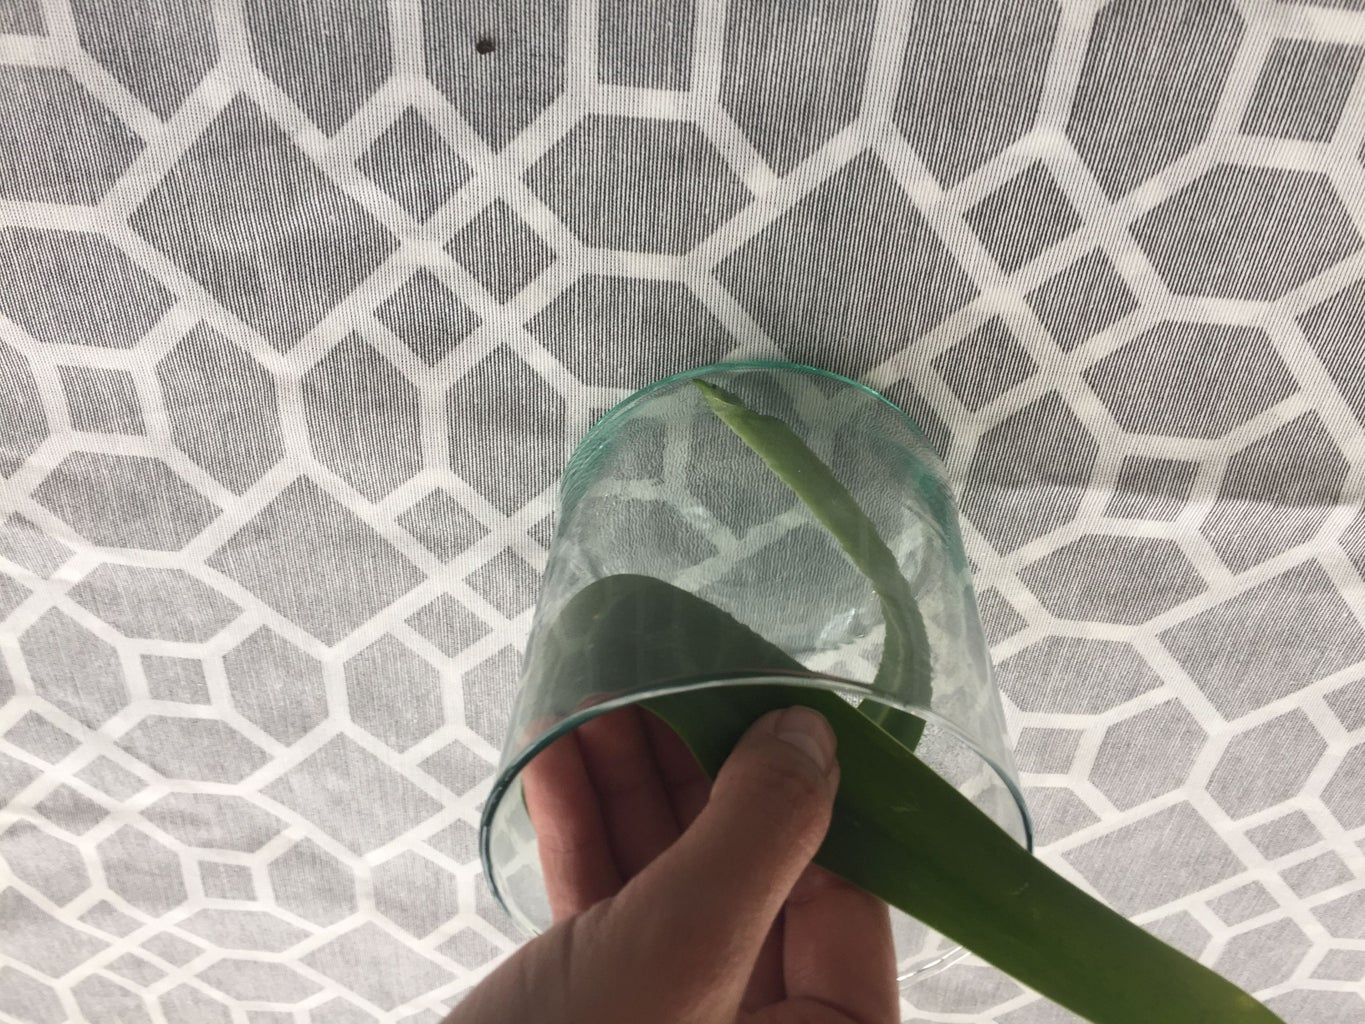 Put the Plants in the Vase